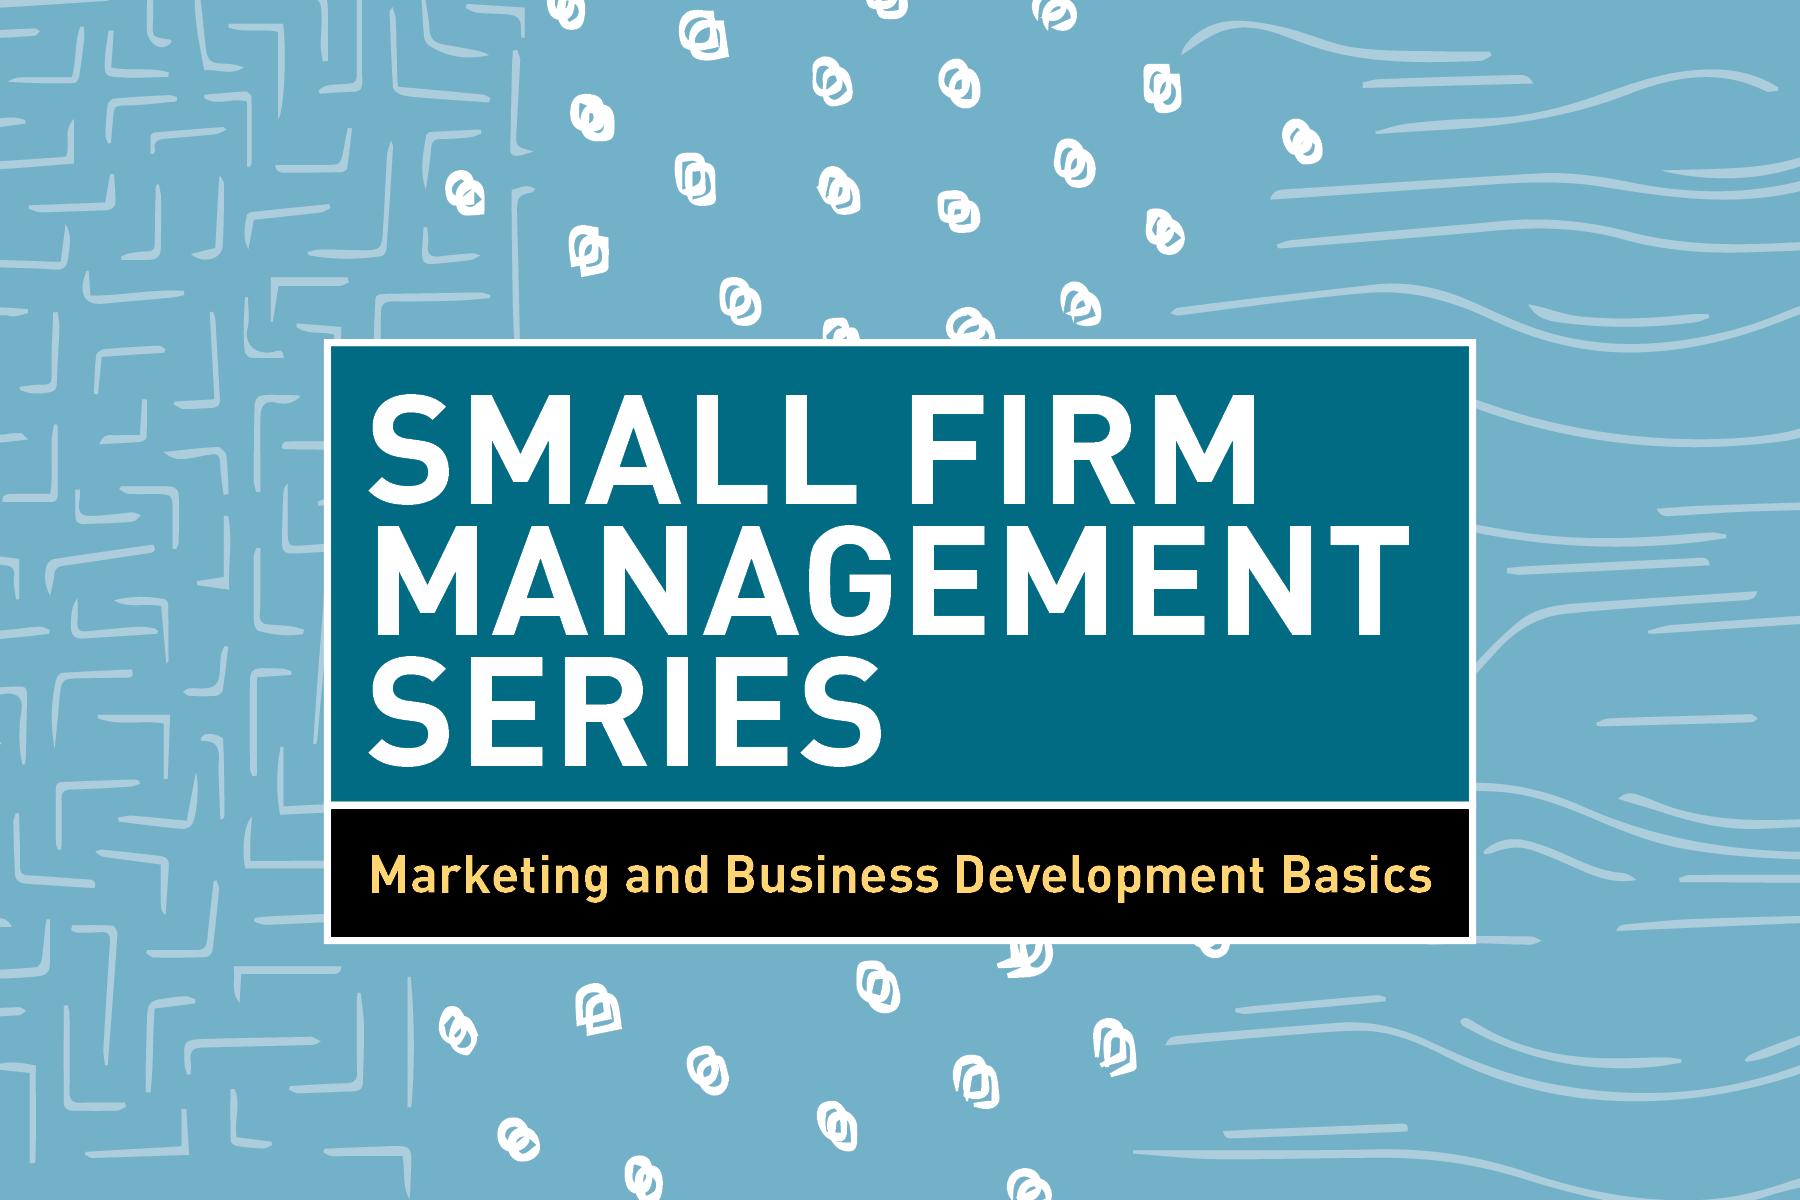 This page is intended only for participants of 2018 Small Firm Management Series: Marketing and Business Development Basics for Small Firm Architects